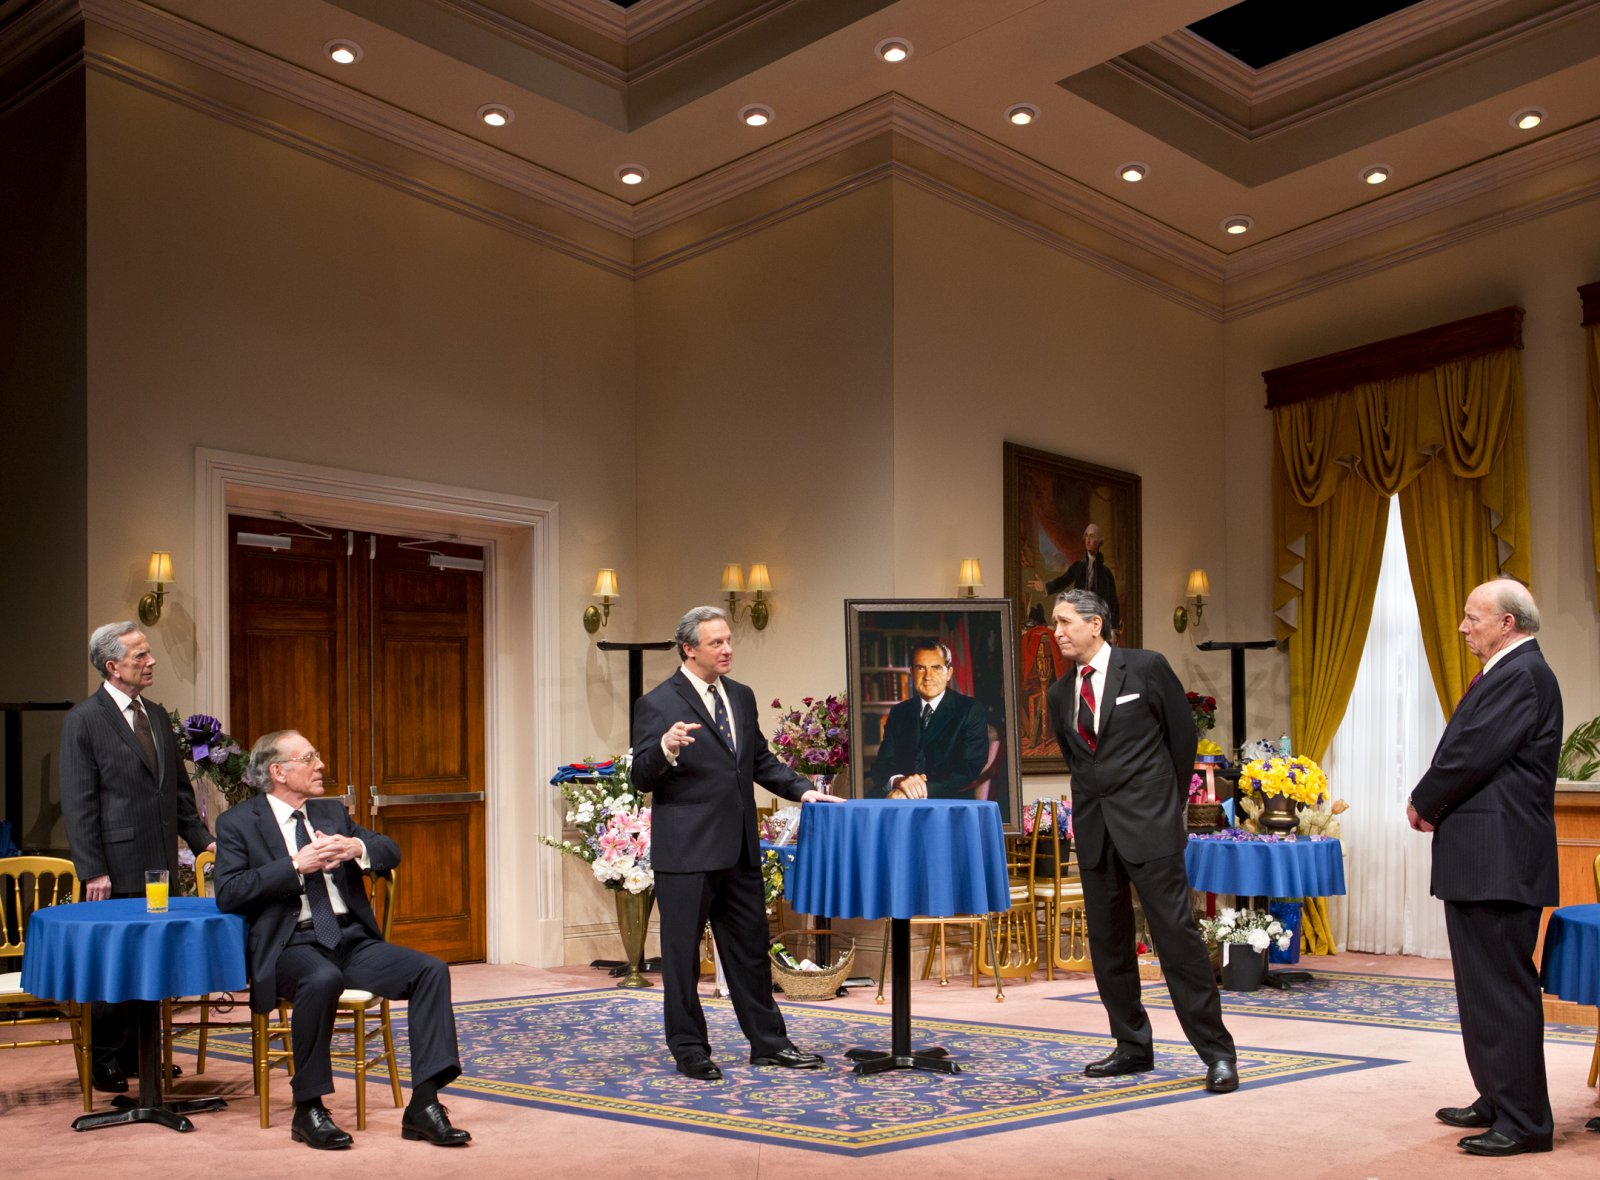 (L – R) – Martin L'Herault, Mark Jacoby, Brit Whittle, Steve Sheridan, and Jeff Steitzer in Milwaukee Repertory Theater's 2014/15 Quadracci Powerhouse world premiere production of Five Presidents.